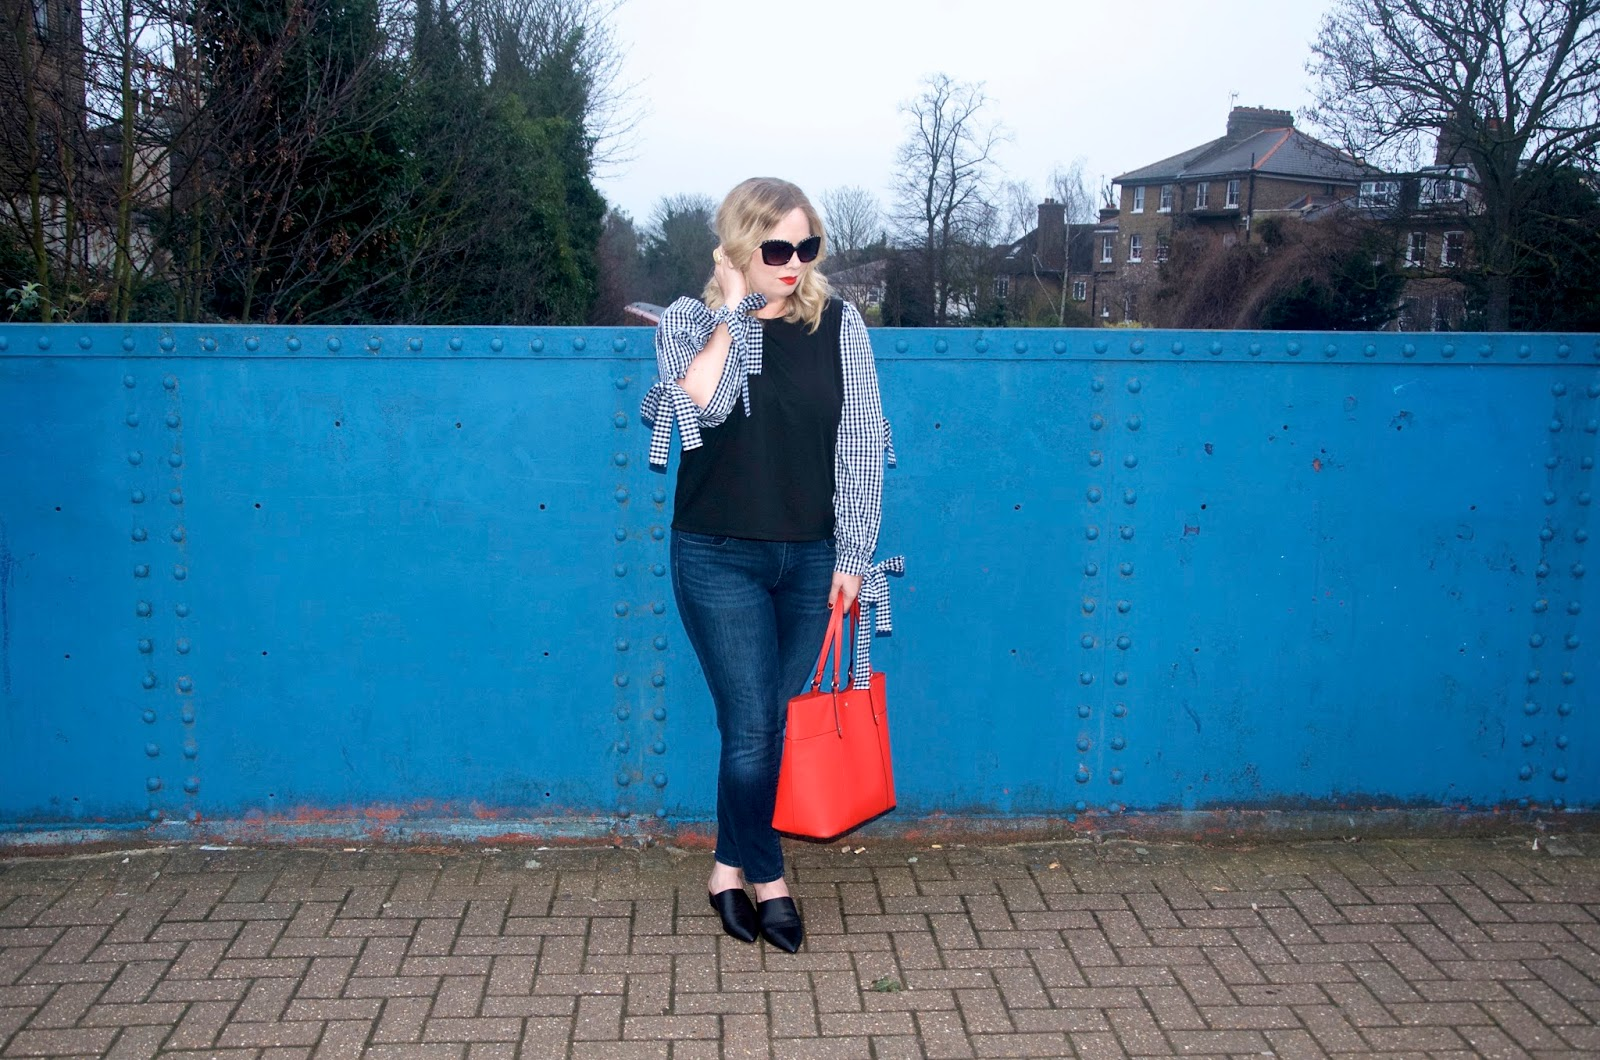 sunglasses, gingham sleeves with bows, red bag, black mules and blue bridge